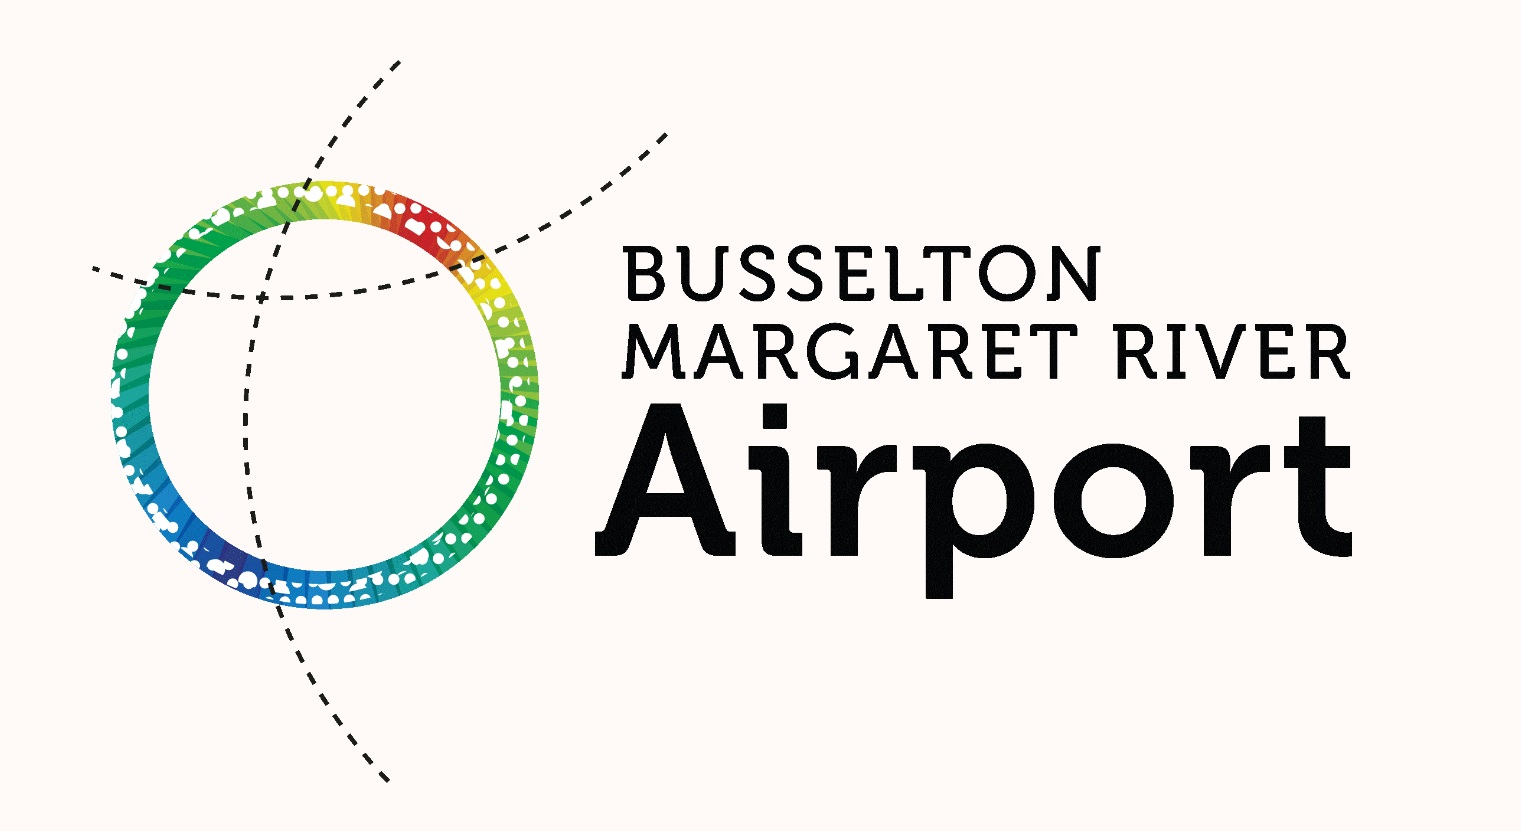 Busselton Margaret River Airport Expansion Proposal has been given the Greenlight